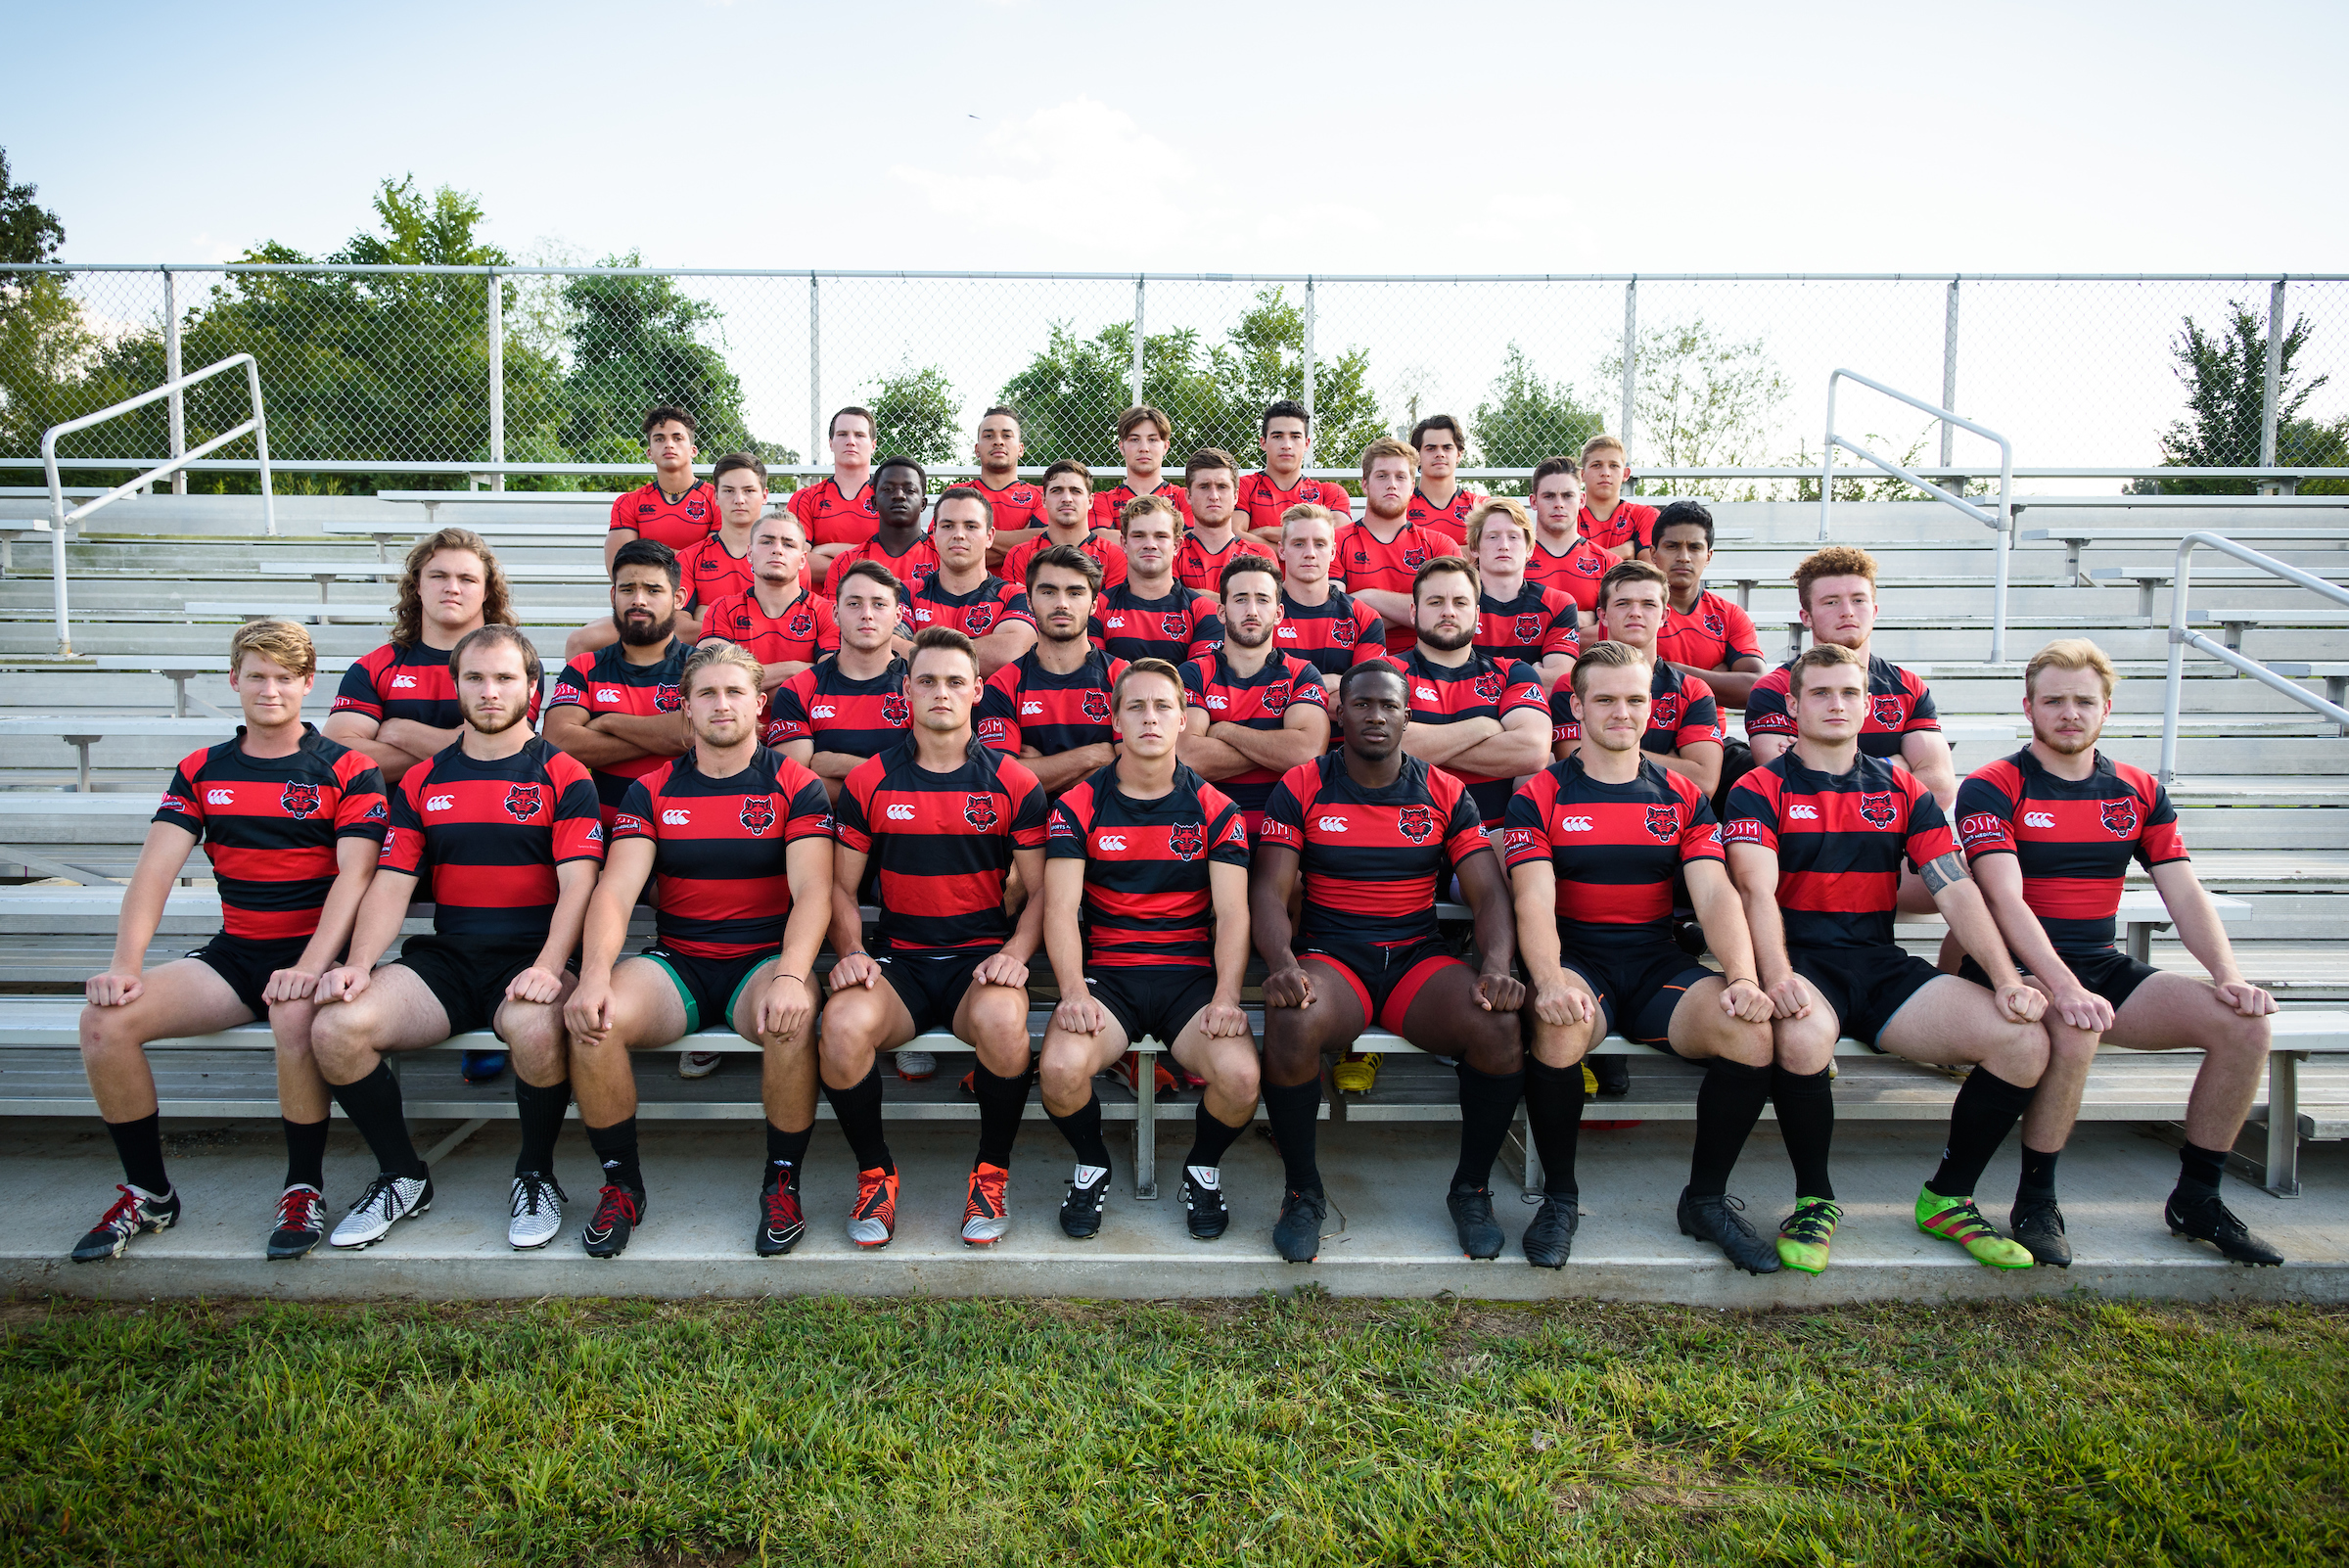 2018 Arkansas State rugby team